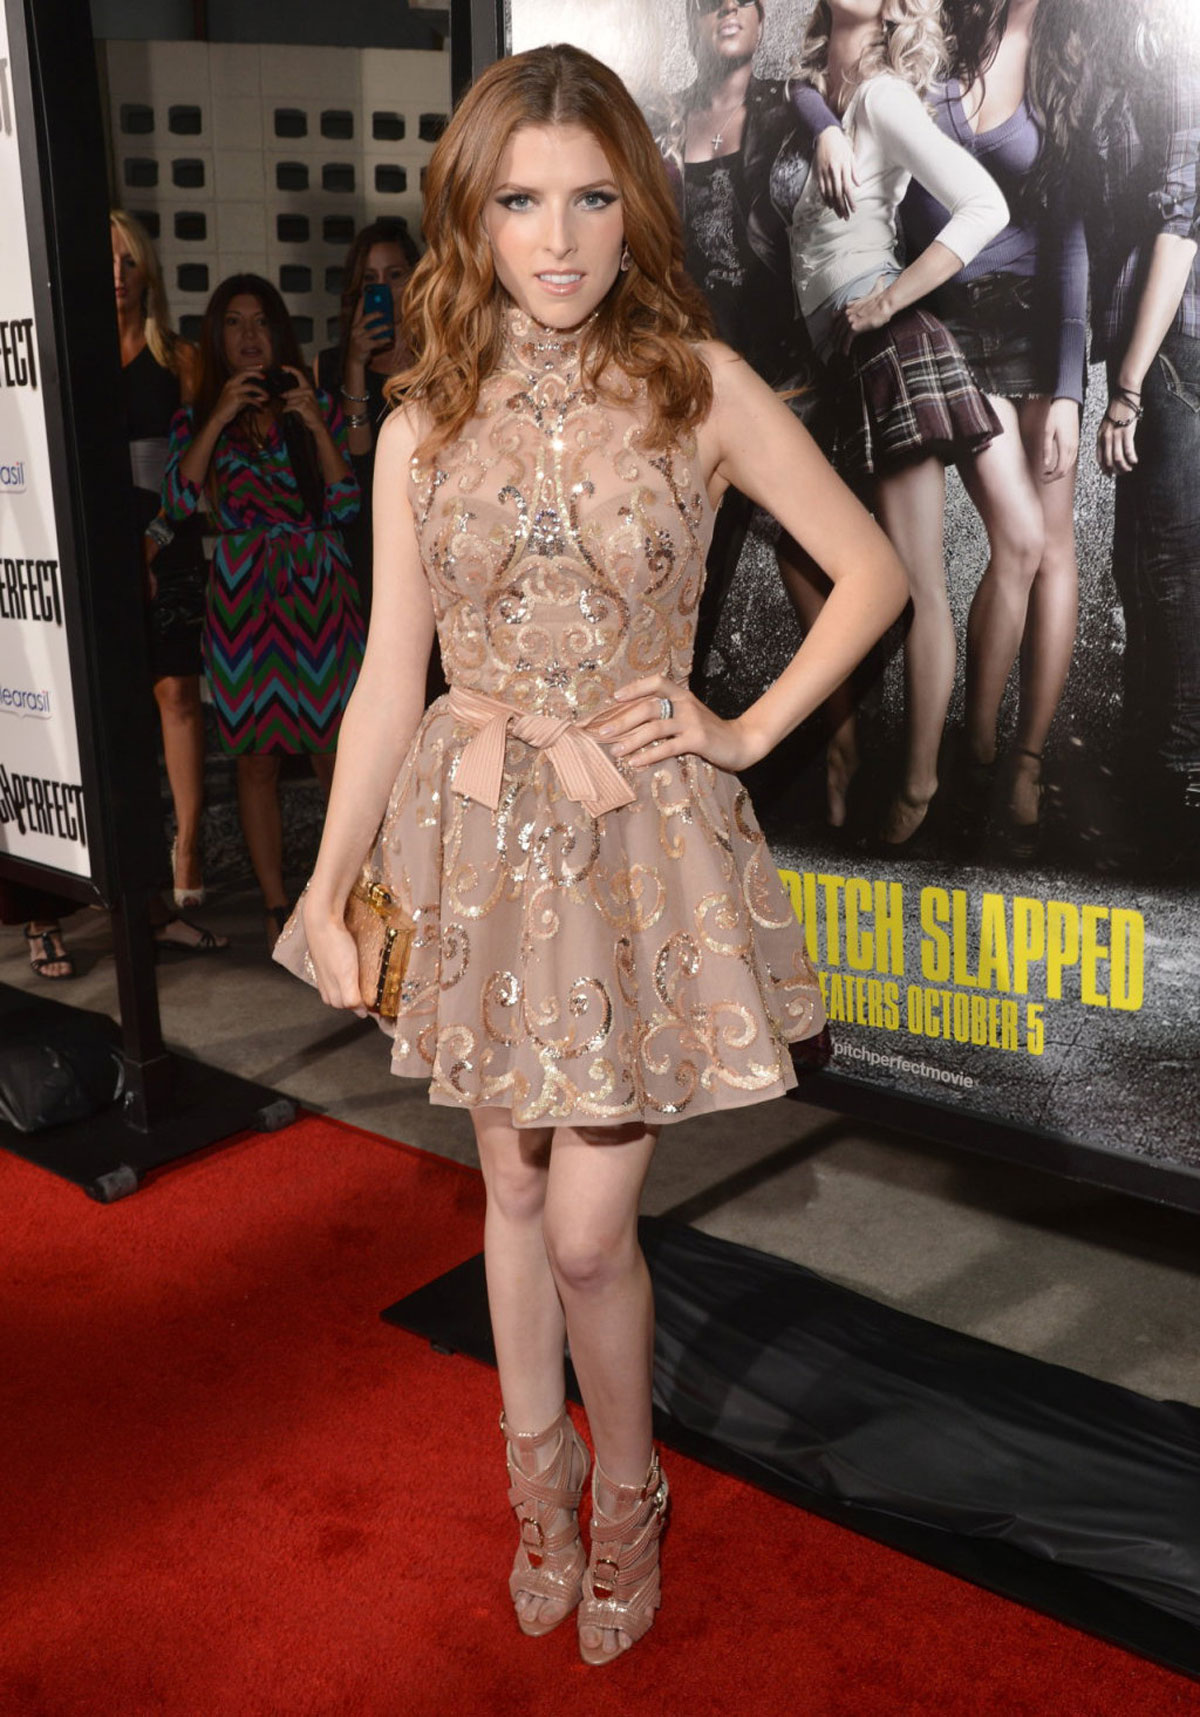 anna kendrick at pitch perfect premiere in los angeles